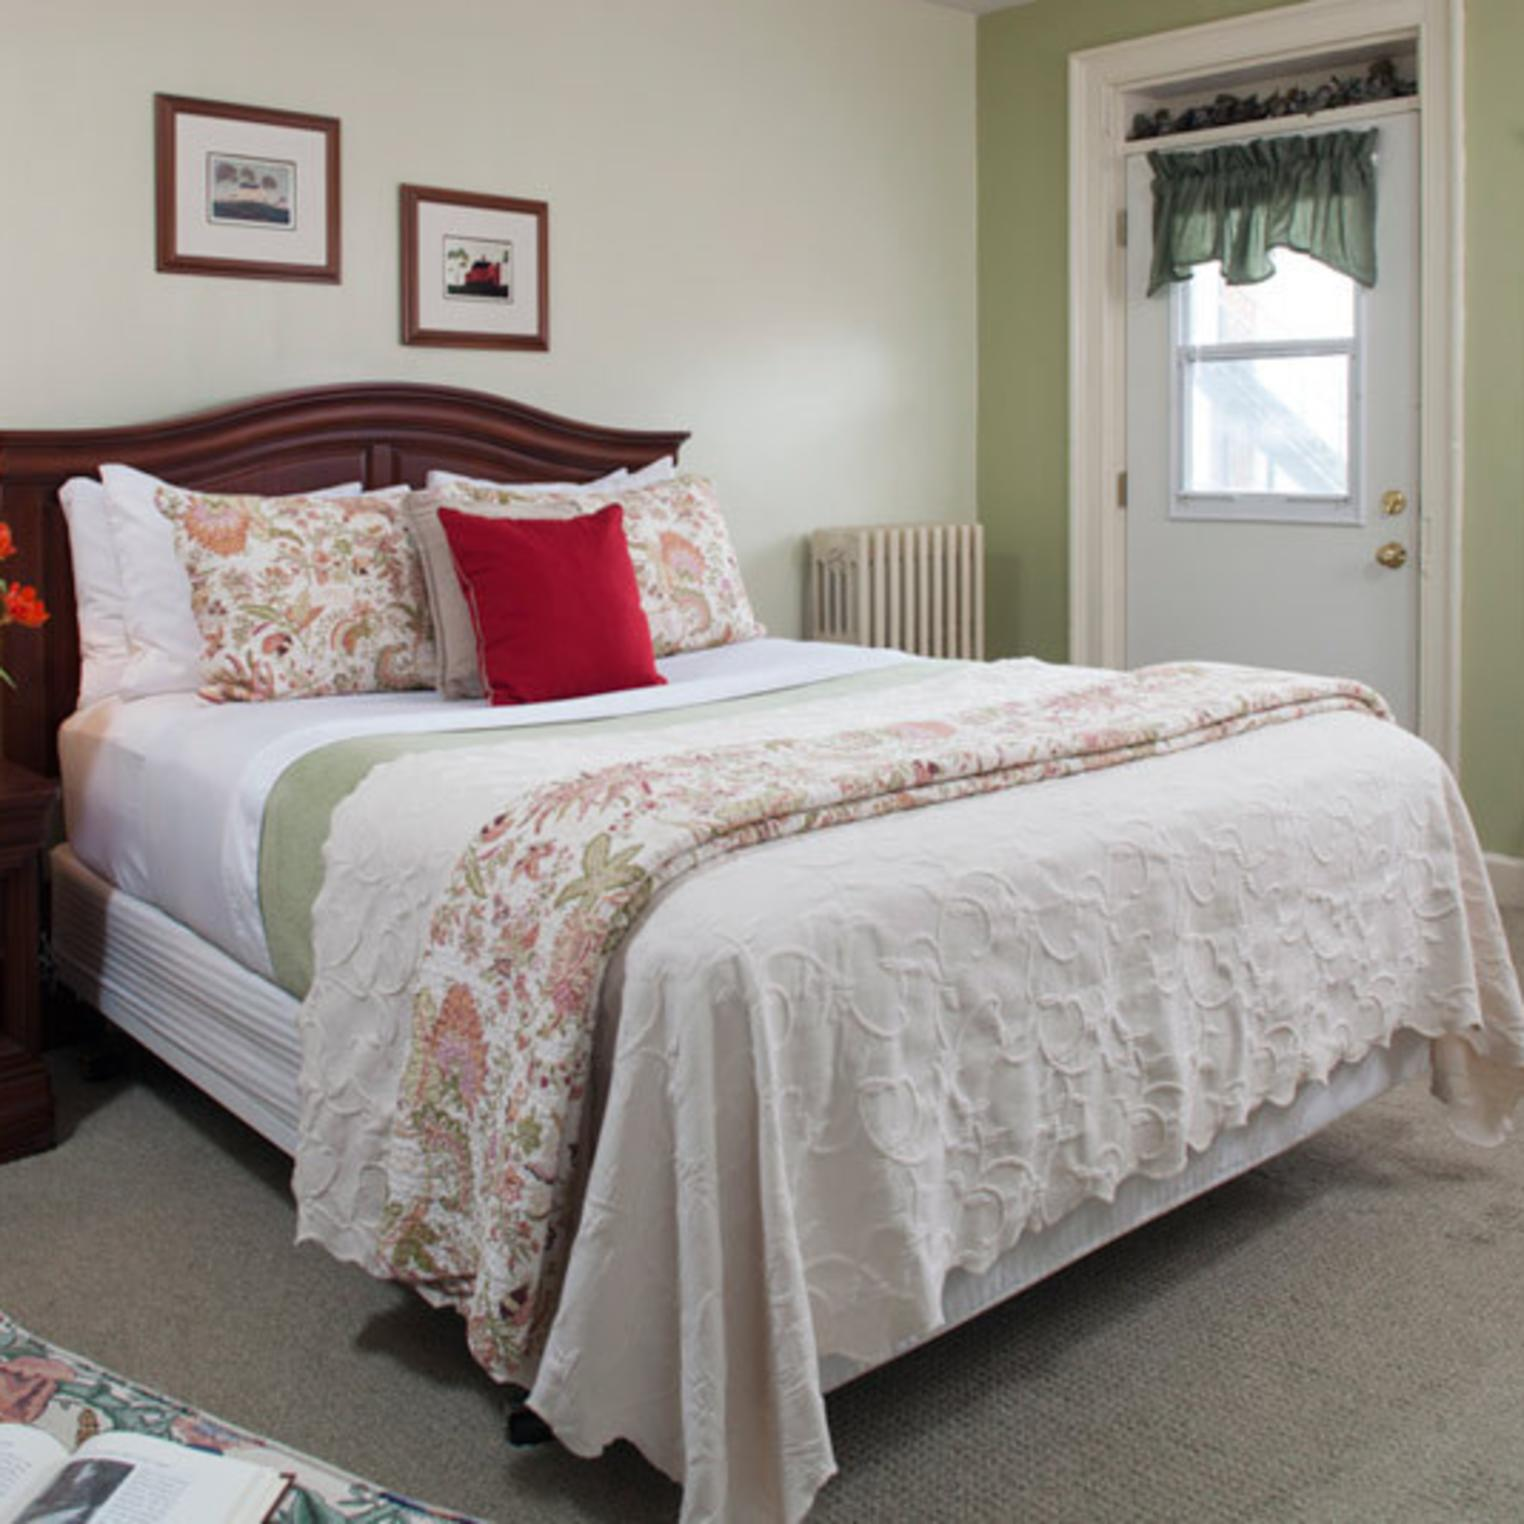 Queen-sized Bed in the Blair Room